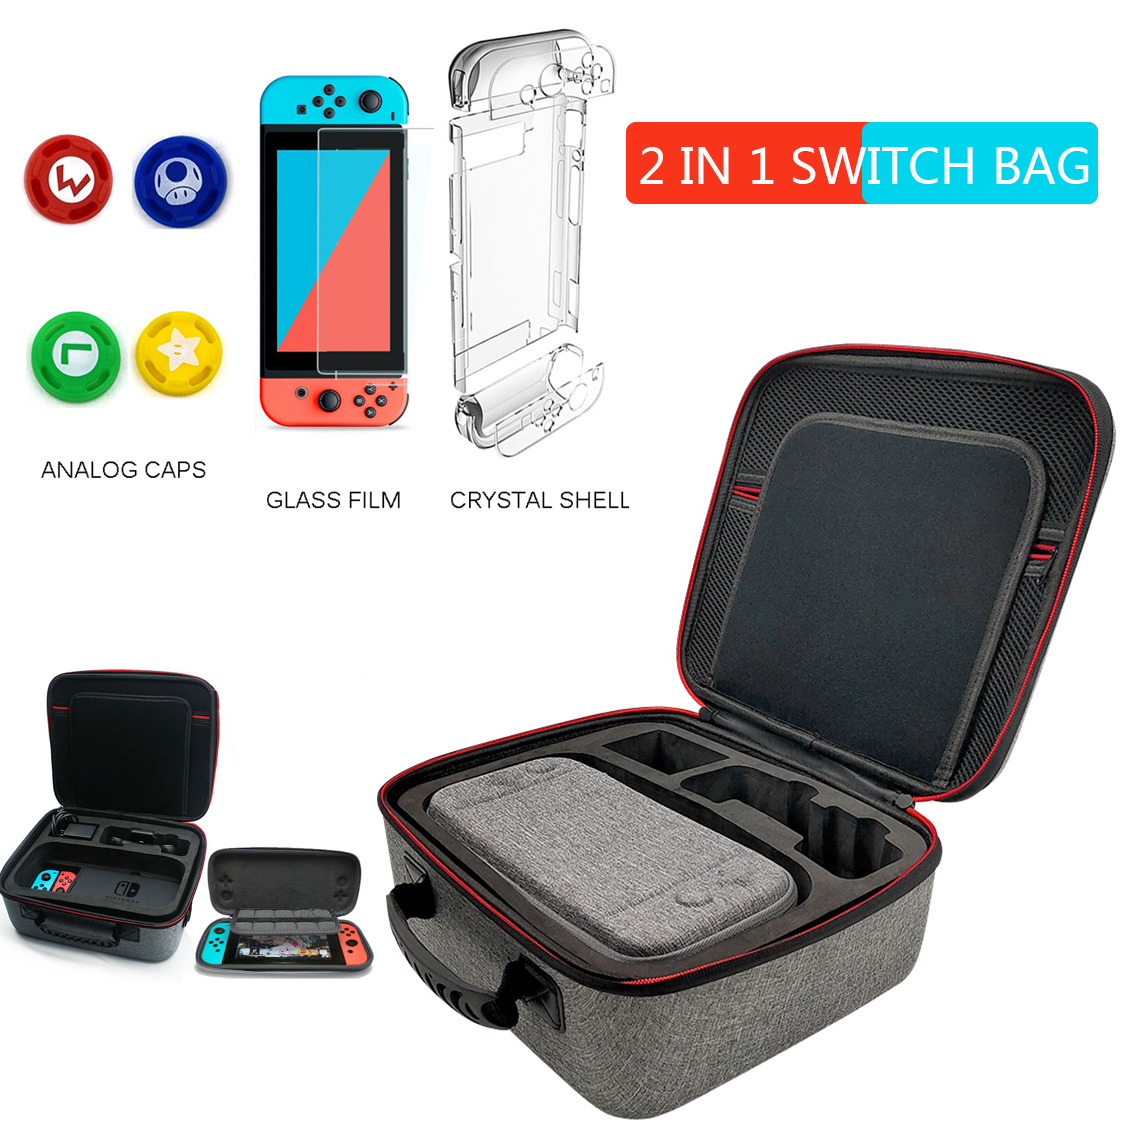 2 in 1 Nintendo Switch Case Large Capacity Nitendo Switch Accessoire Bag Nintend Switch Game Storage Portable Carrying Case